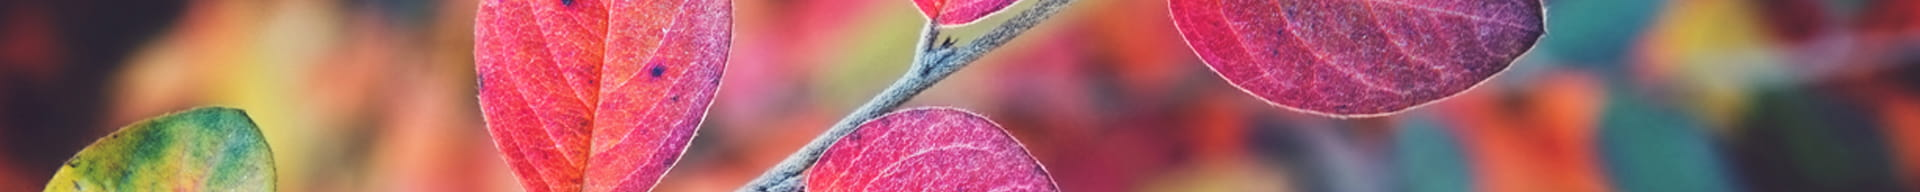 close up photo of an aspen tree during fall